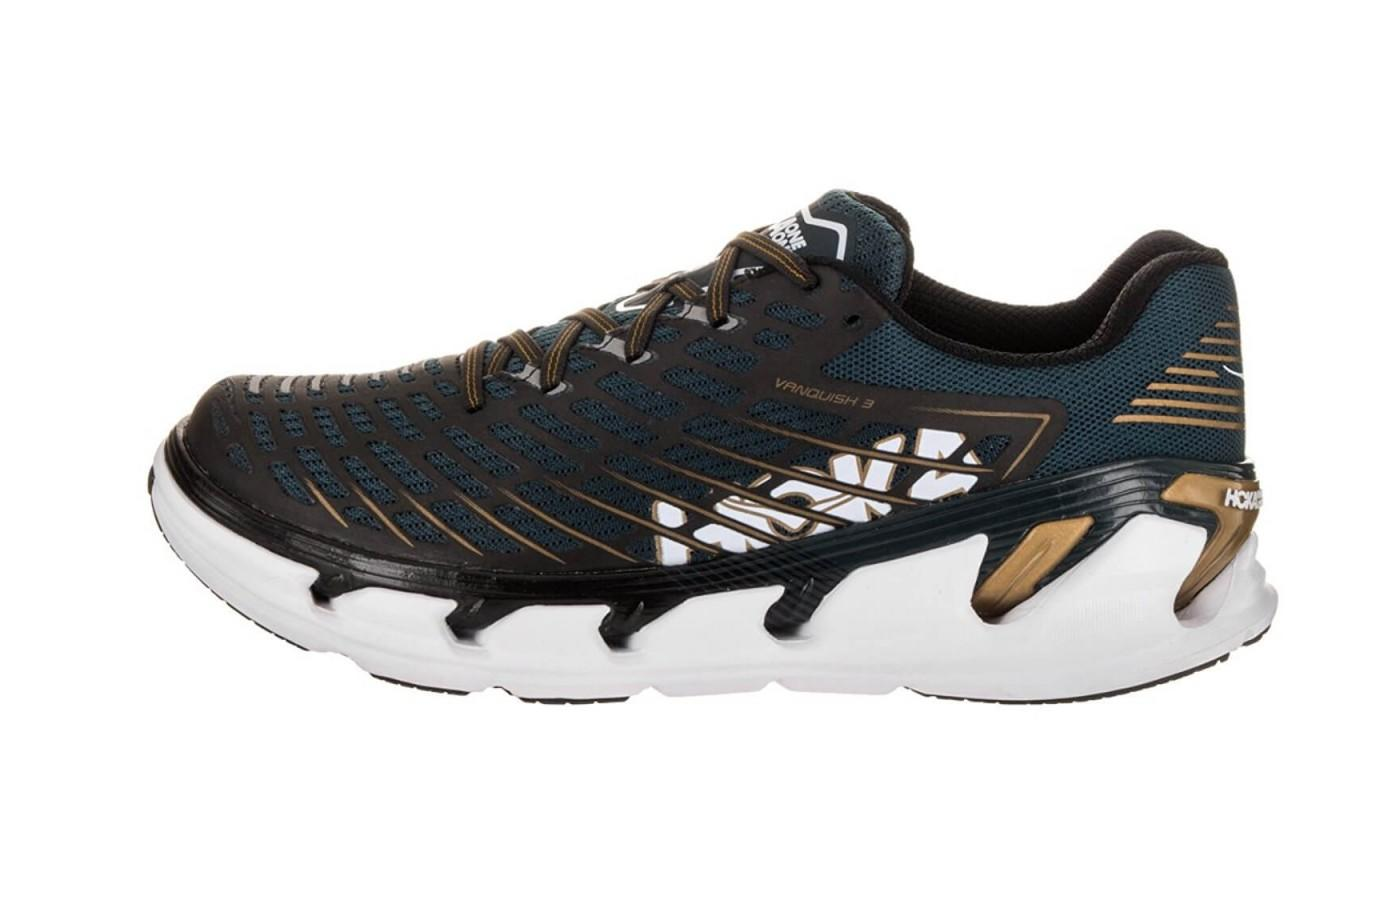 The Hoka One One Vanquish 3 offers plenty of that marshmallow cushioning